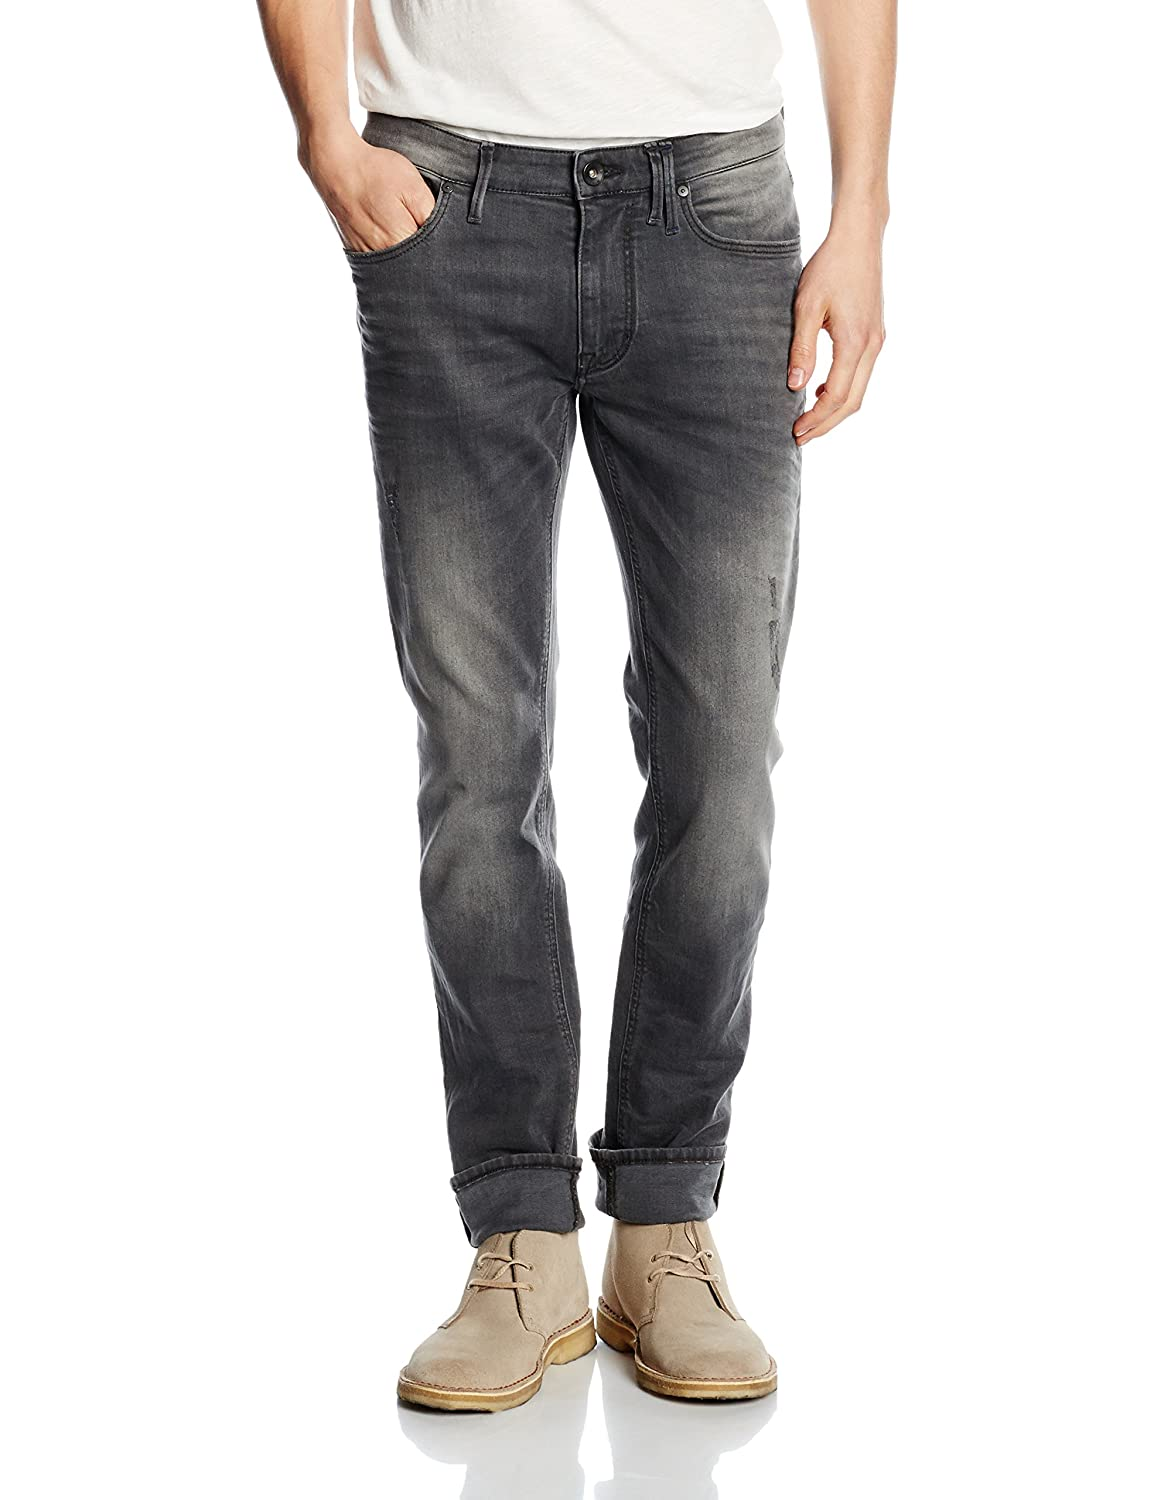 Marc O'Polo Denim Herren Jeanshose M67908812058